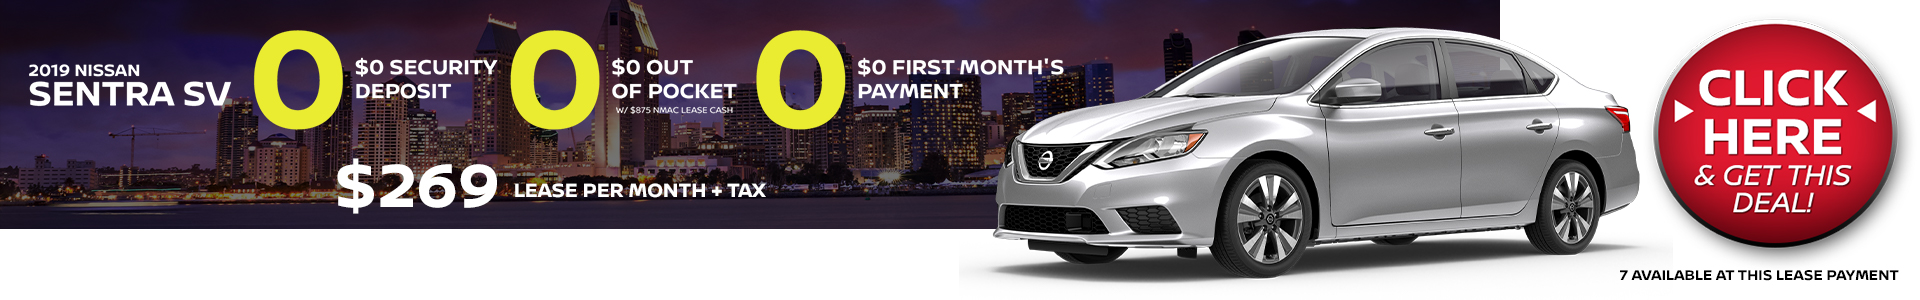 Mossy Nissan - Nissan Sentra $269 Lease